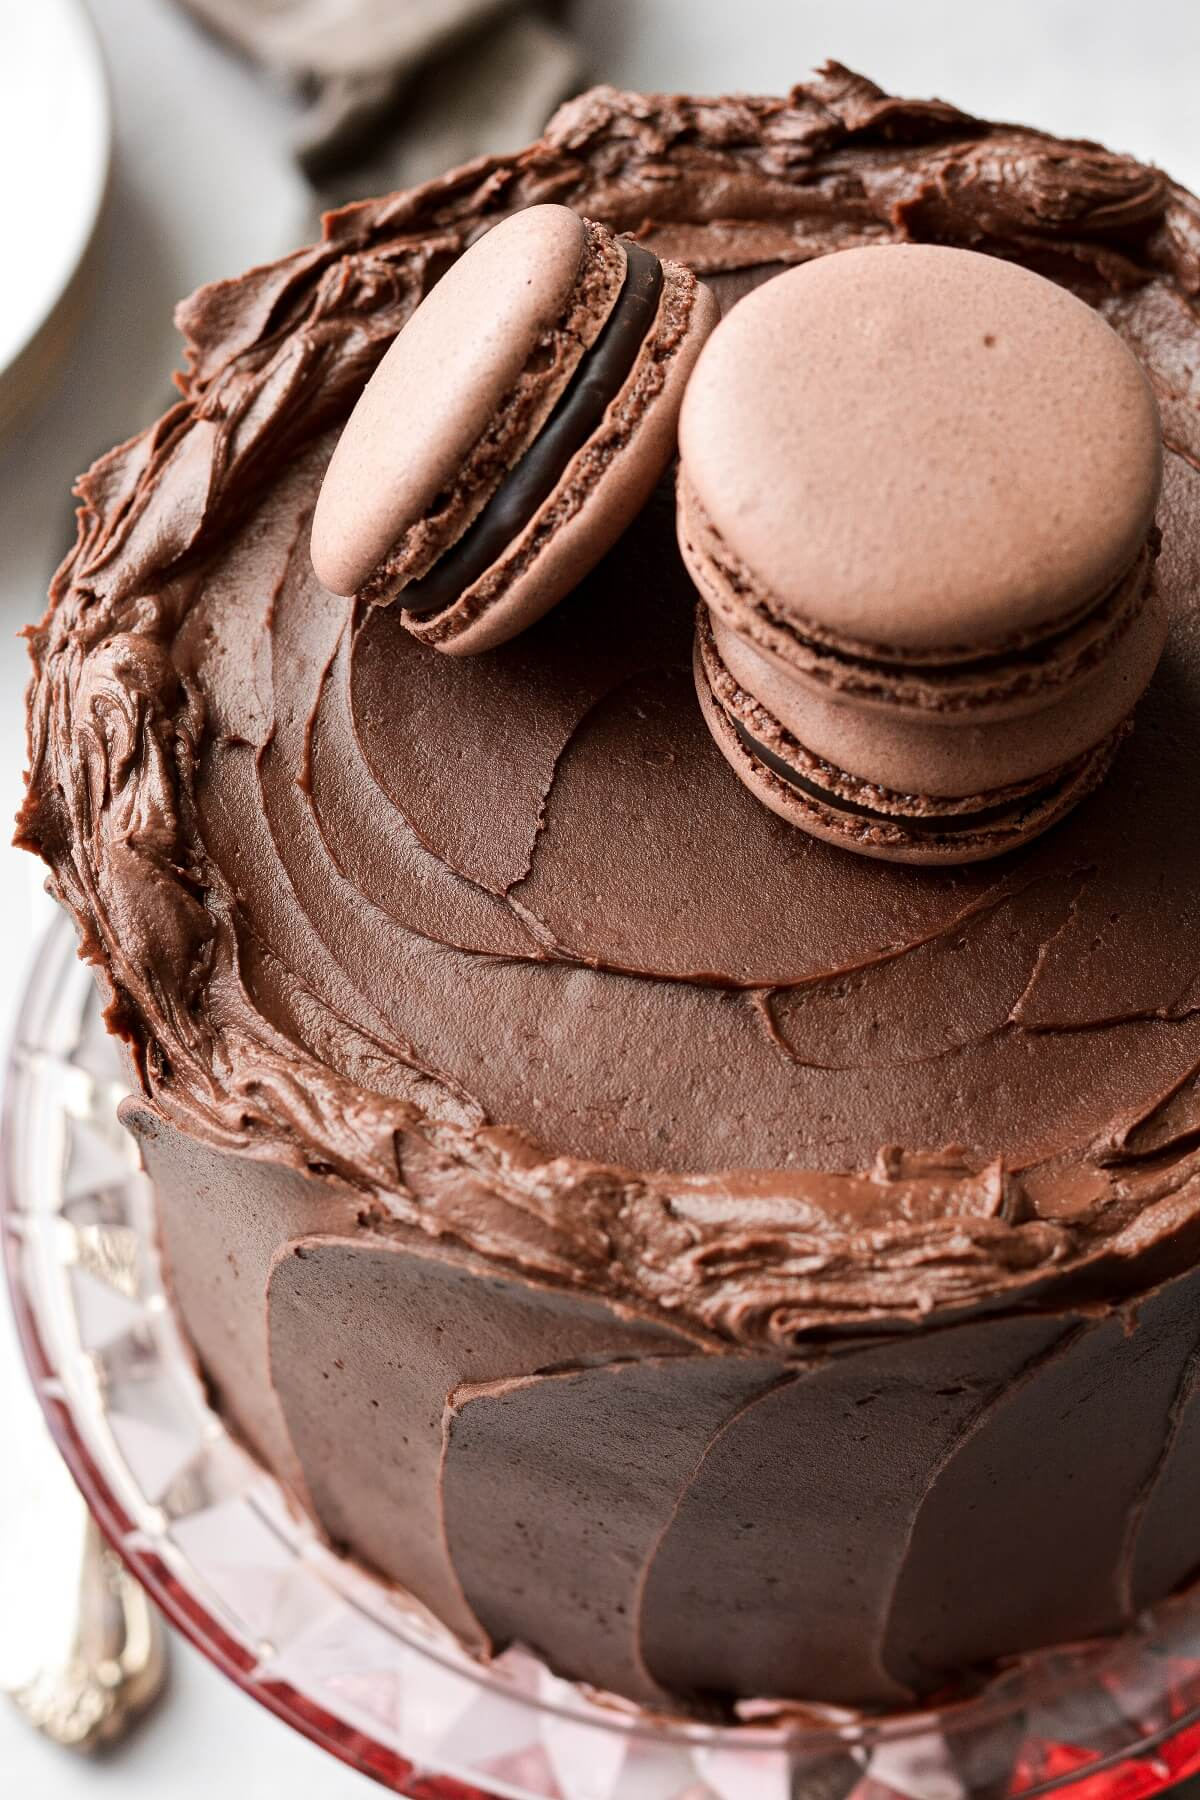 High altitude chocolate cake, topped with chocolate macarons.